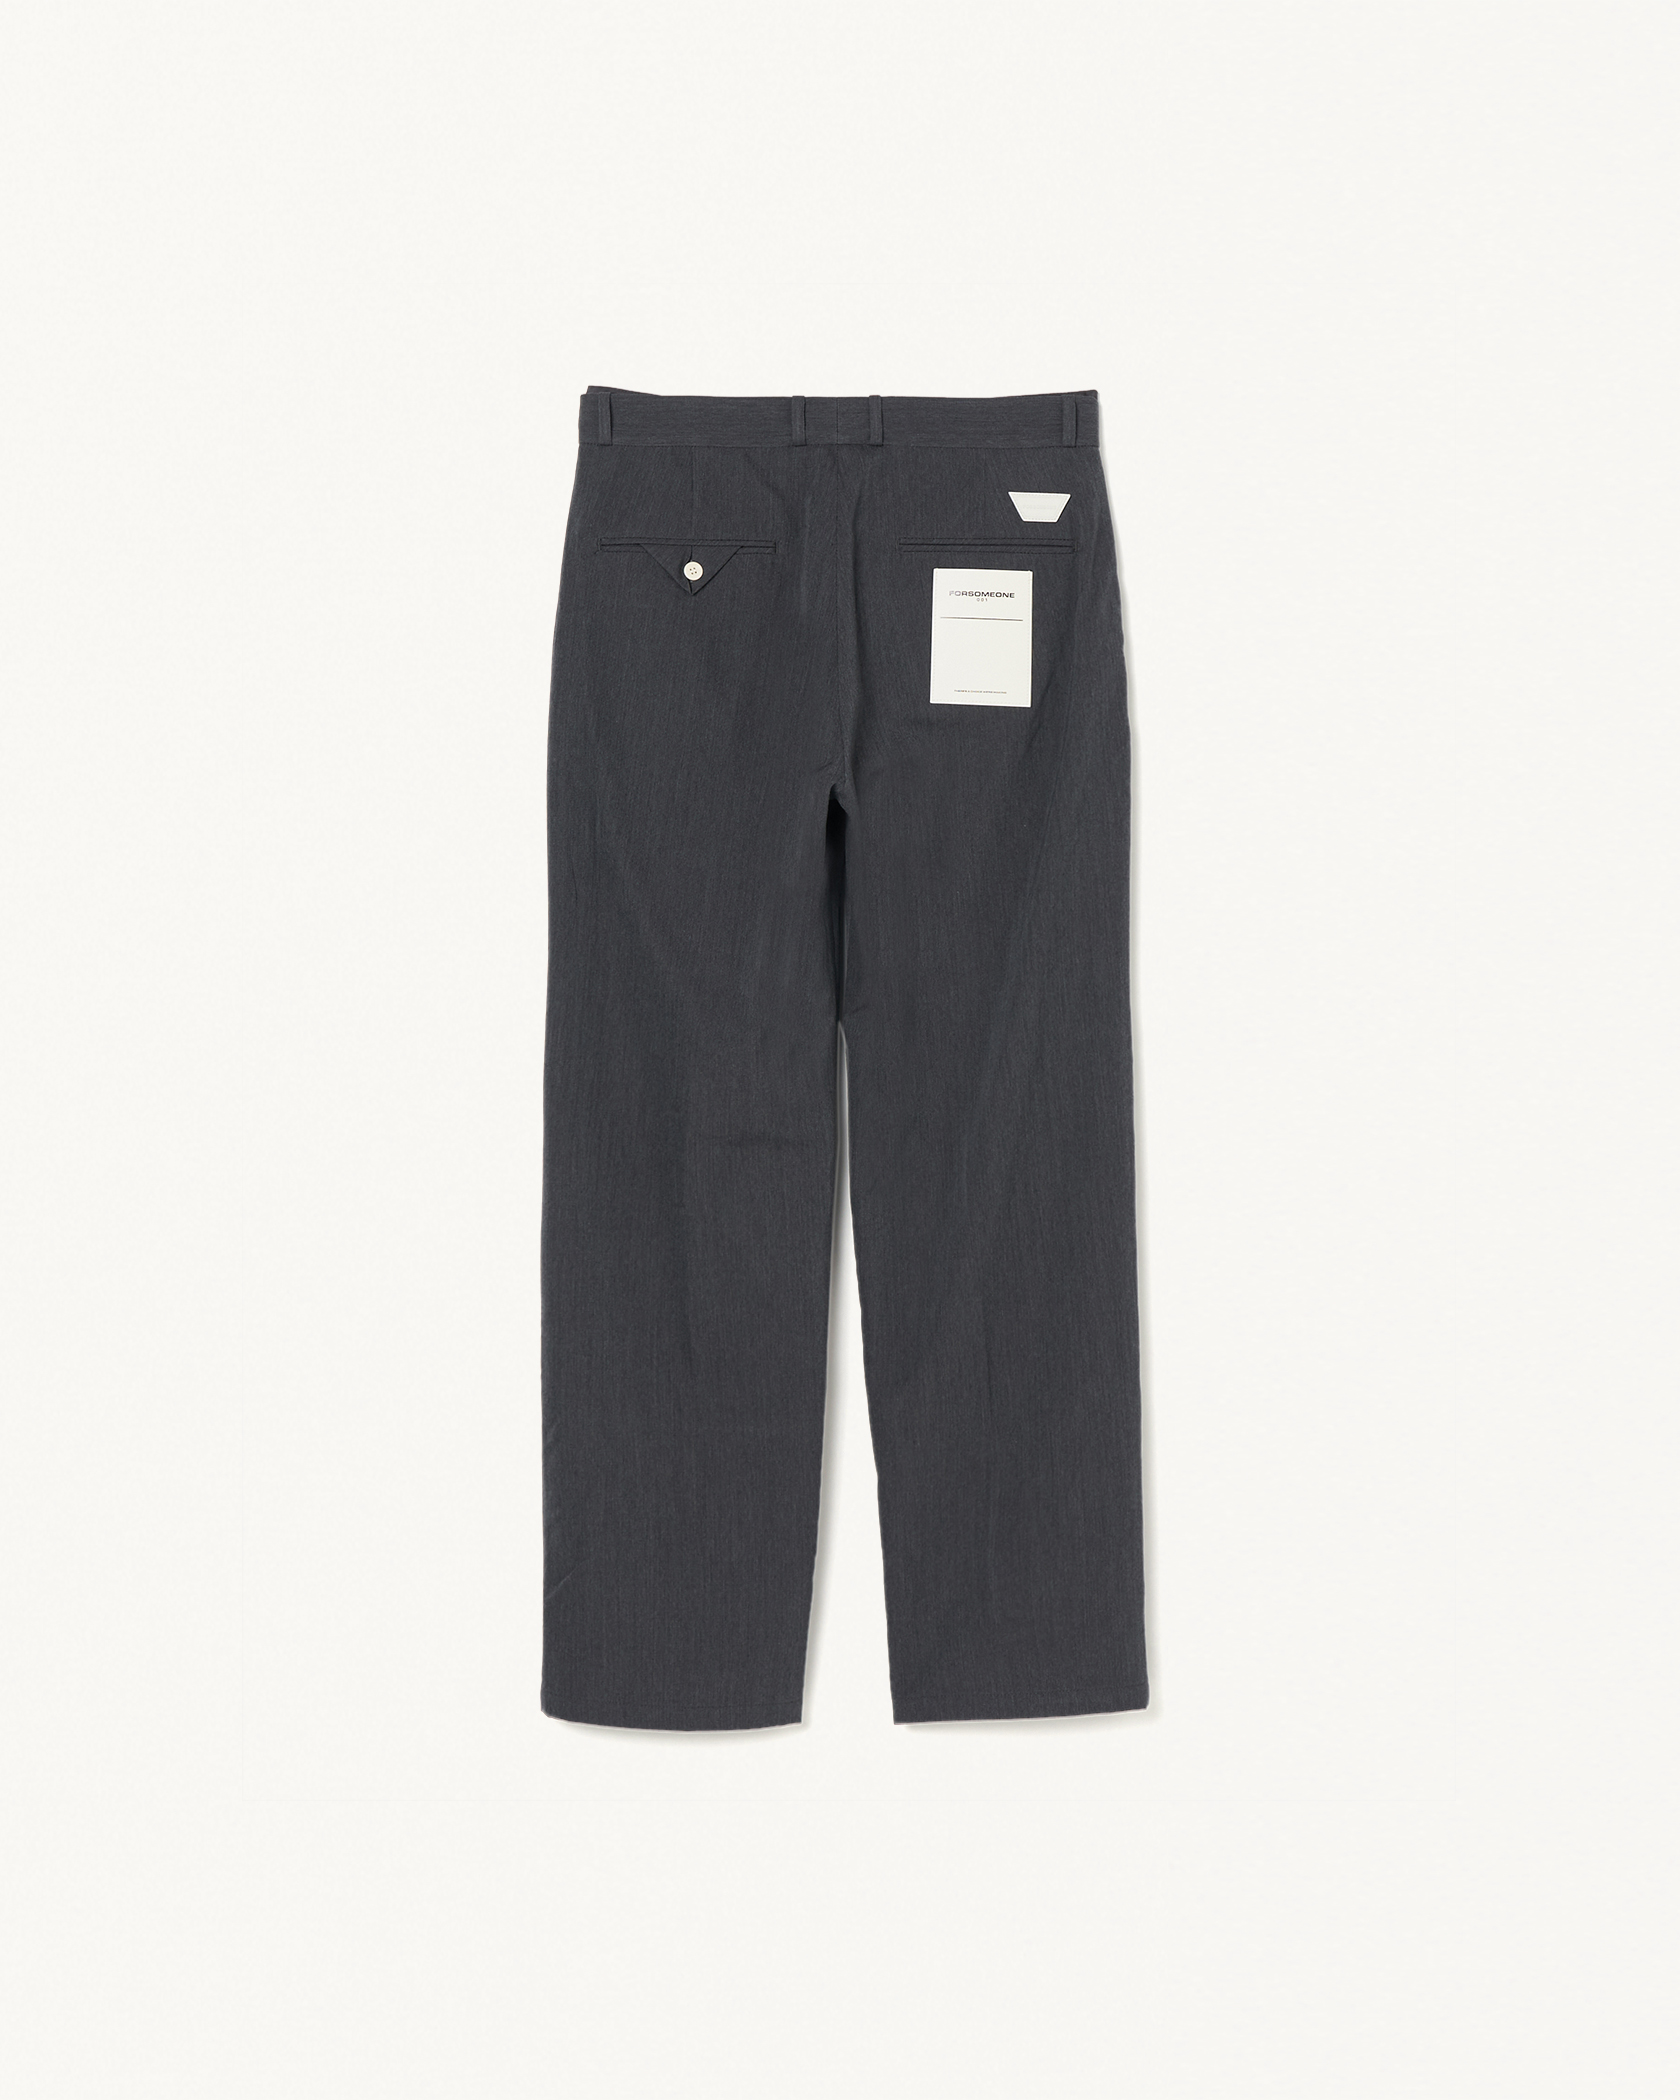 WORK TROUSERS 詳細画像 Navy 2